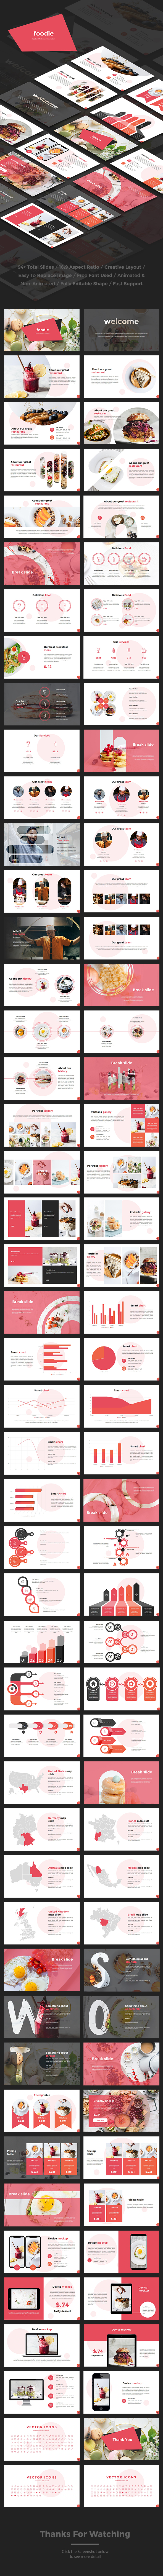 Foodie - Food And Restaurant Google Slides Template - Google Slides Presentation Templates